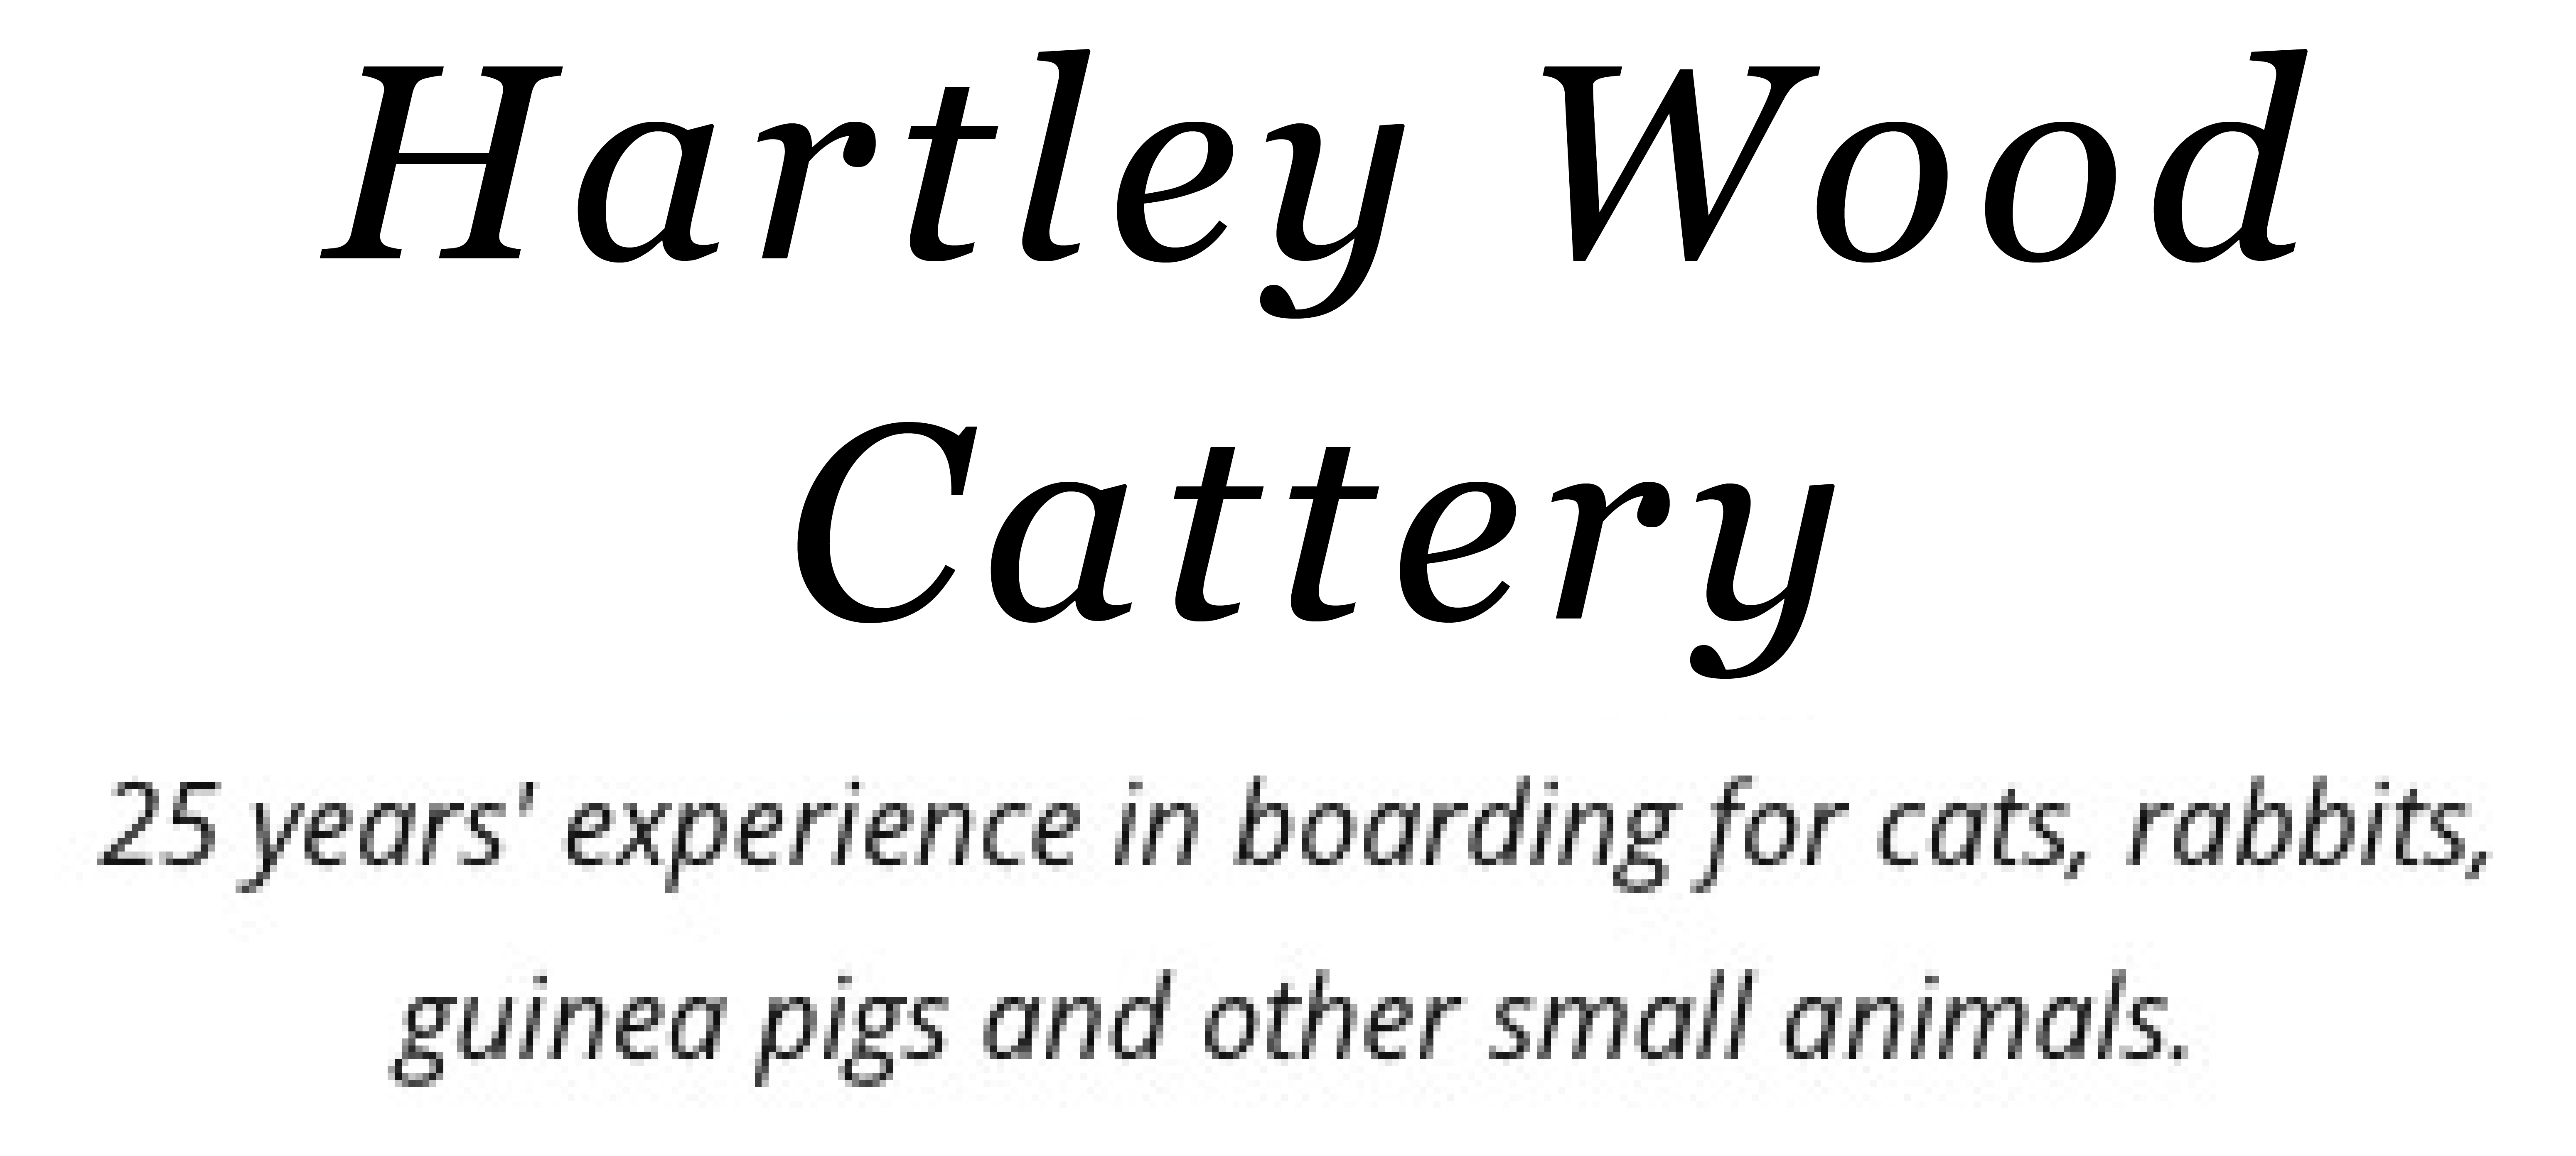 Hartleywood Cattery is an affordable cattery in Leeds